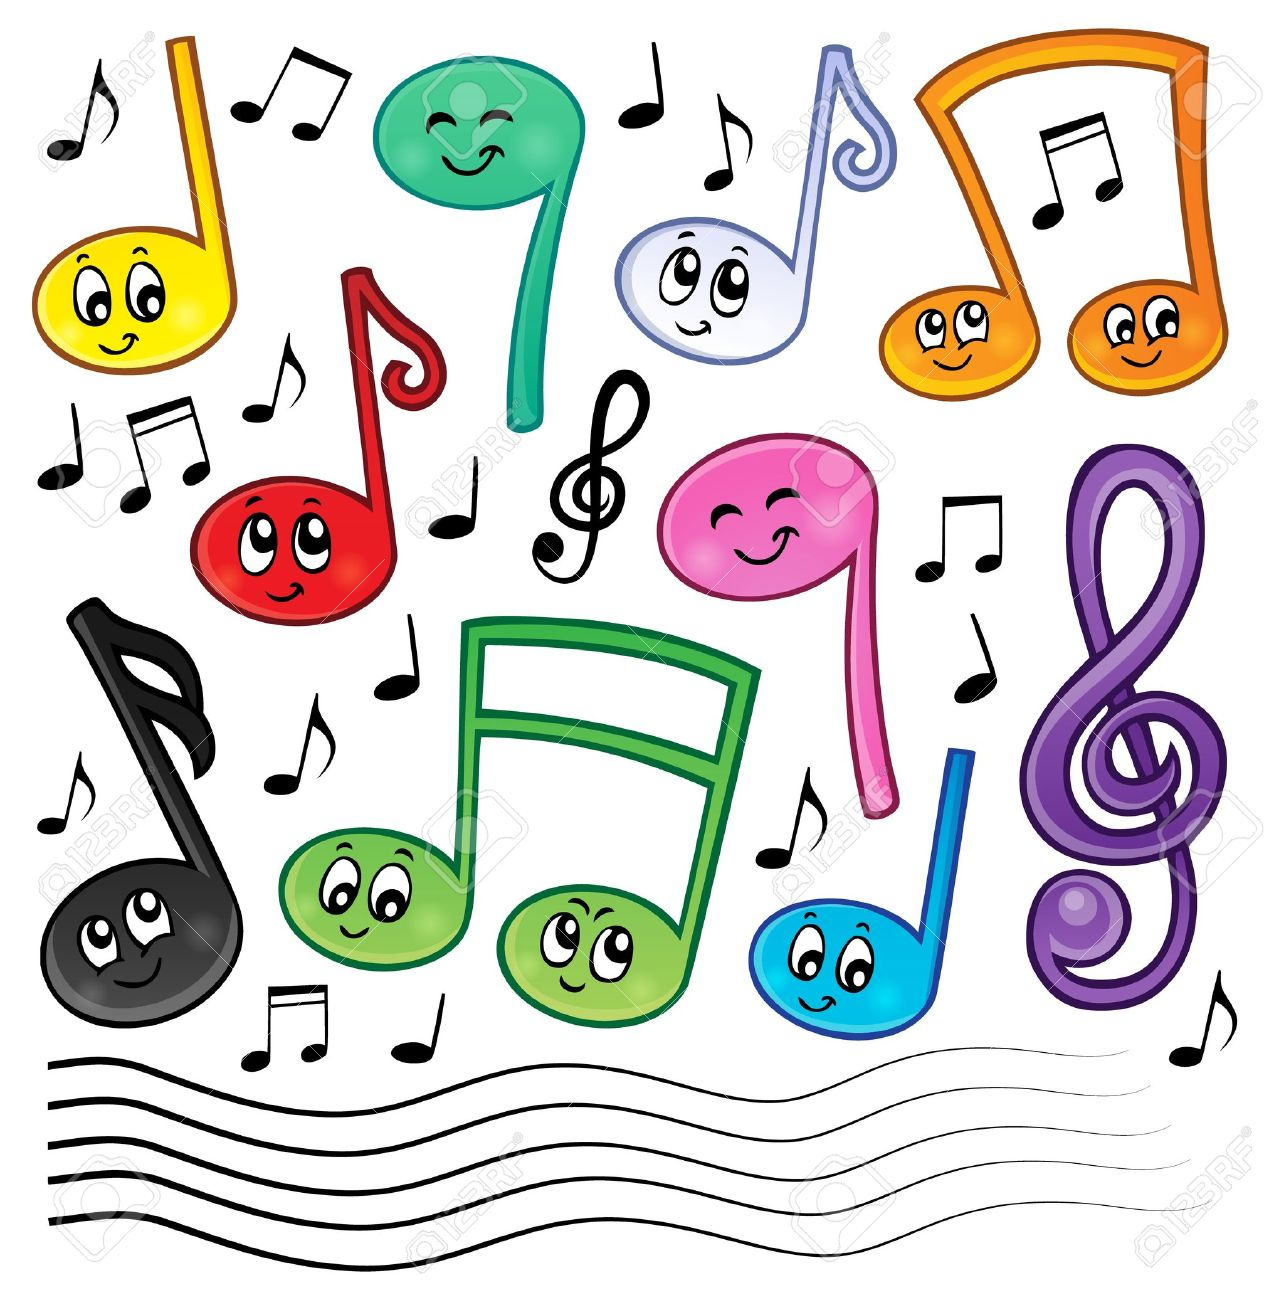 Uncategorized Music Cartoons cartoon music notes theme image 1 eps10 vector illustration stock 36328235